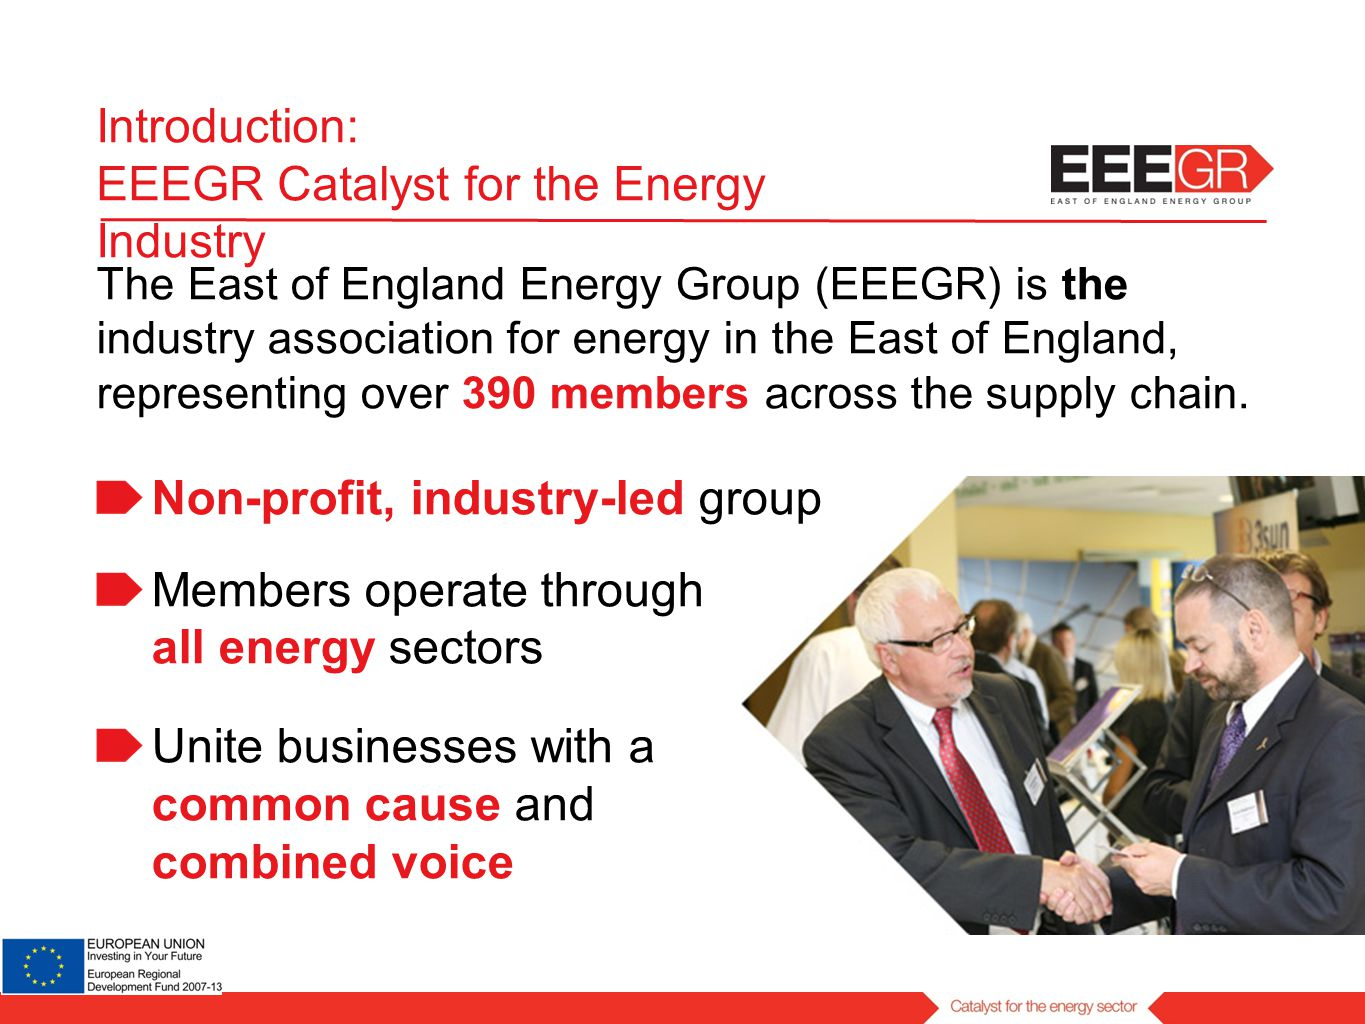 Introduction: EEEGR Catalyst for the Energy Industry The East of England Energy Group (EEEGR) is the industry association for energy in the East of England, representing over 390 members across the supply chain.